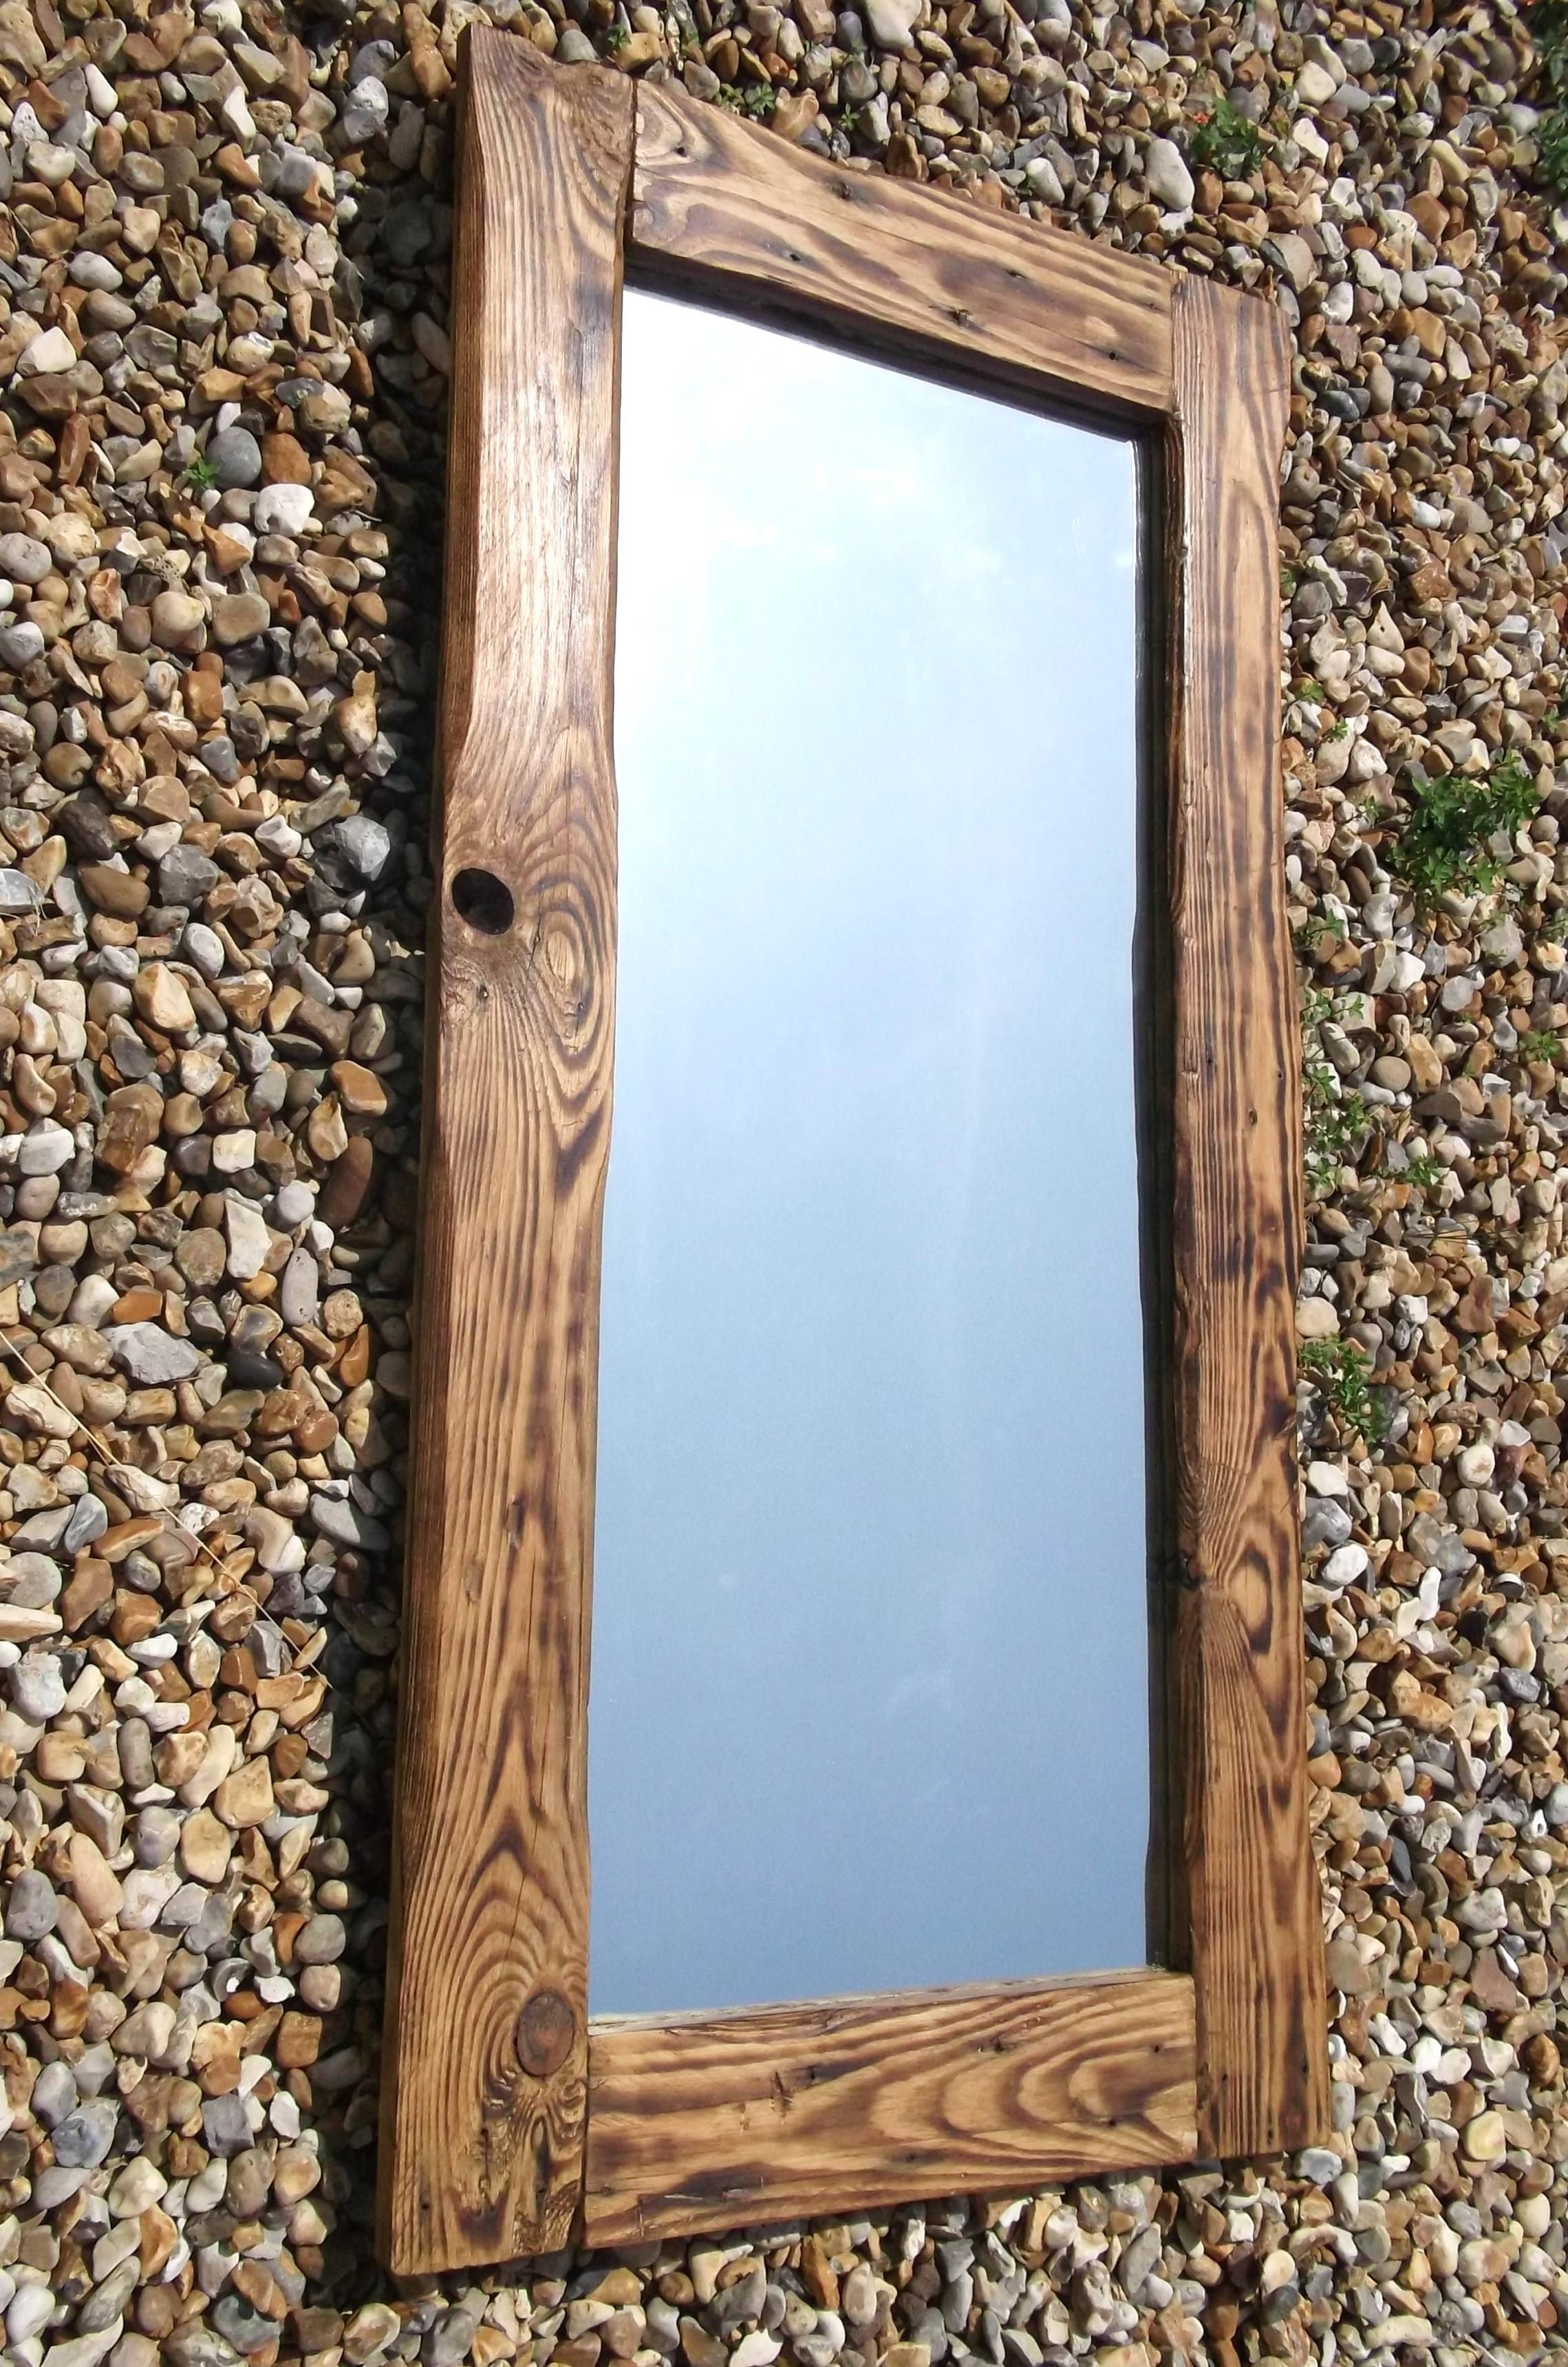 Reclaimed Wood Mirrors | Dave's Beach Hut intended for Large Oak Framed Mirrors (Image 24 of 25)